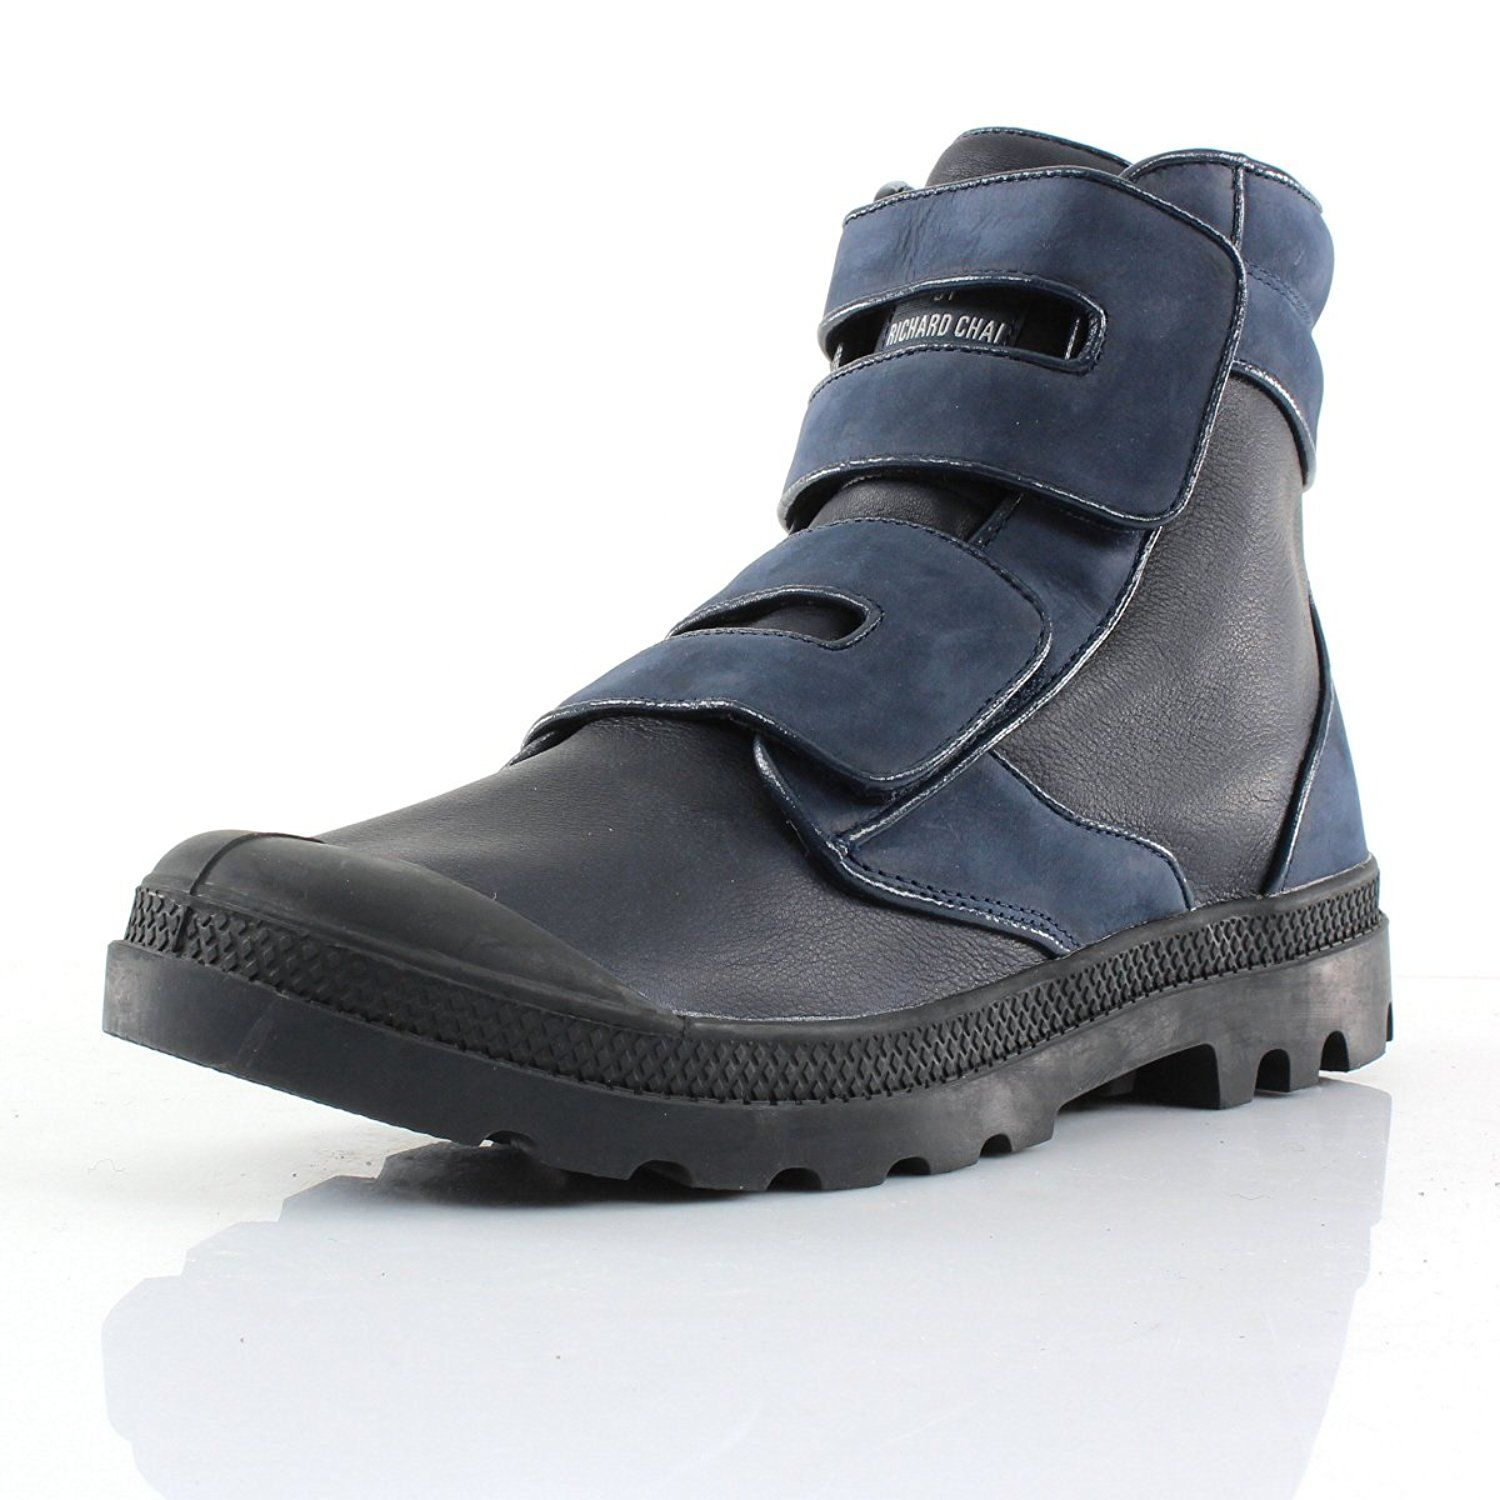 841f49f4969 Men's Palladium RC Strap High Casual Velctro Ankle Boots 03136-400 ...